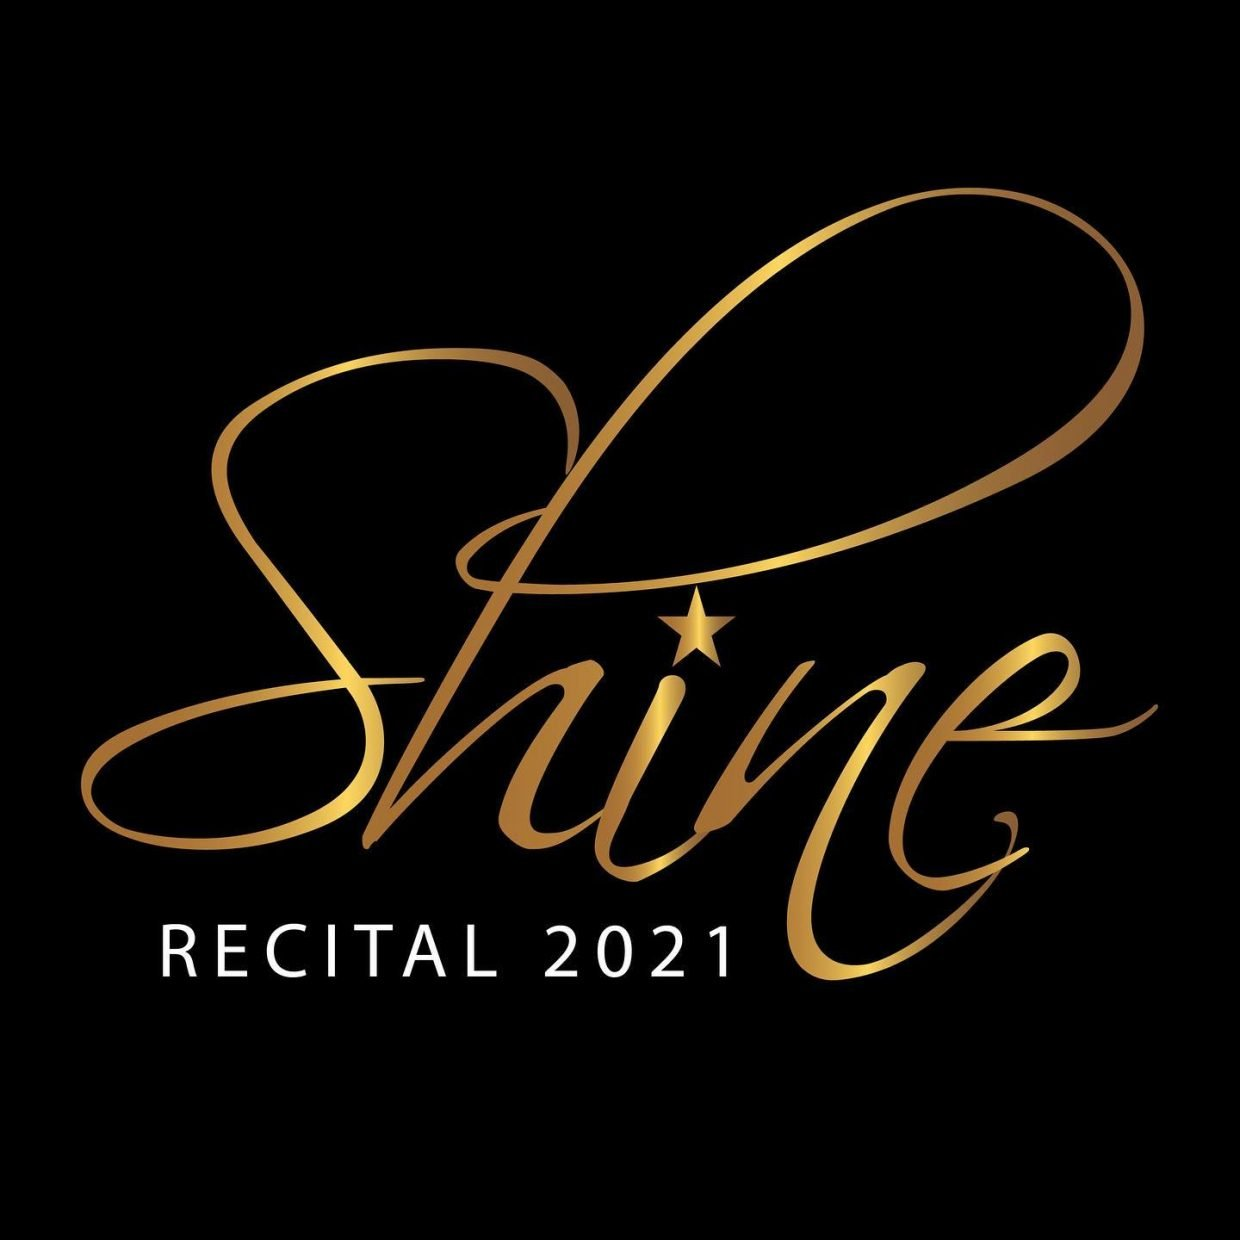 Jennifer's Jazz It Up 2021 recital theme logo